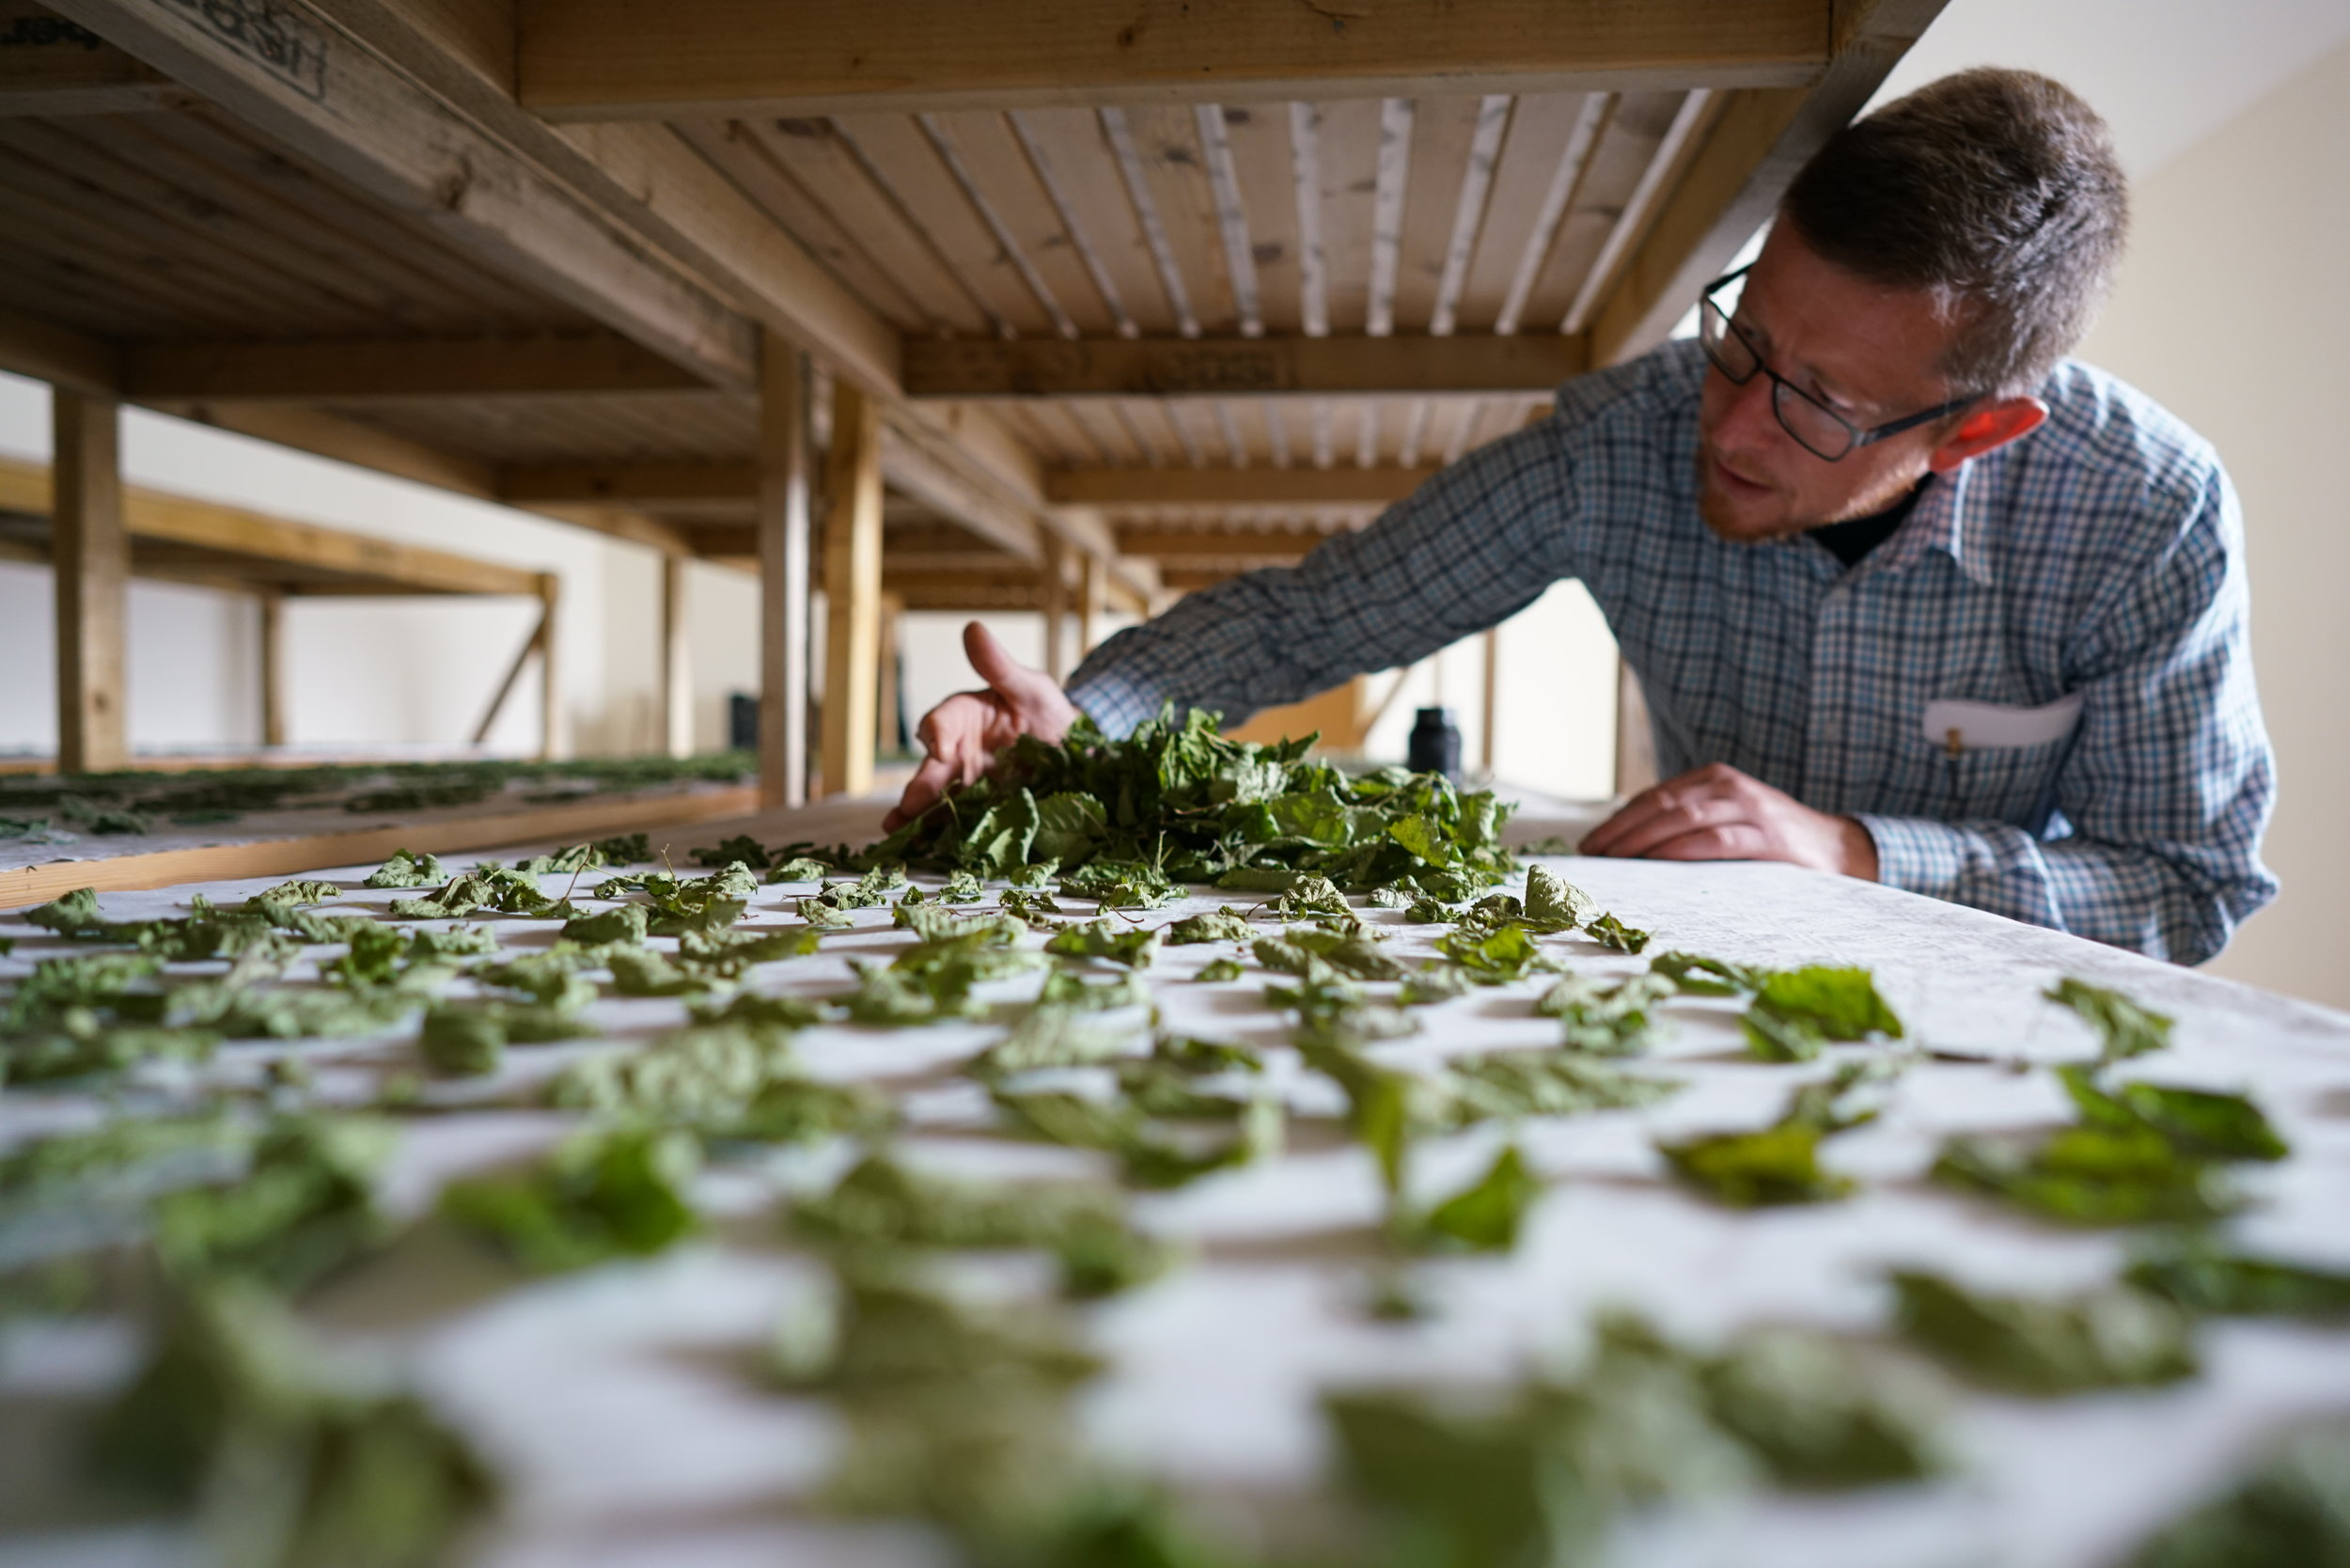 James Donaldson laying out foraged botanicals to dry, courtesy The Botanist